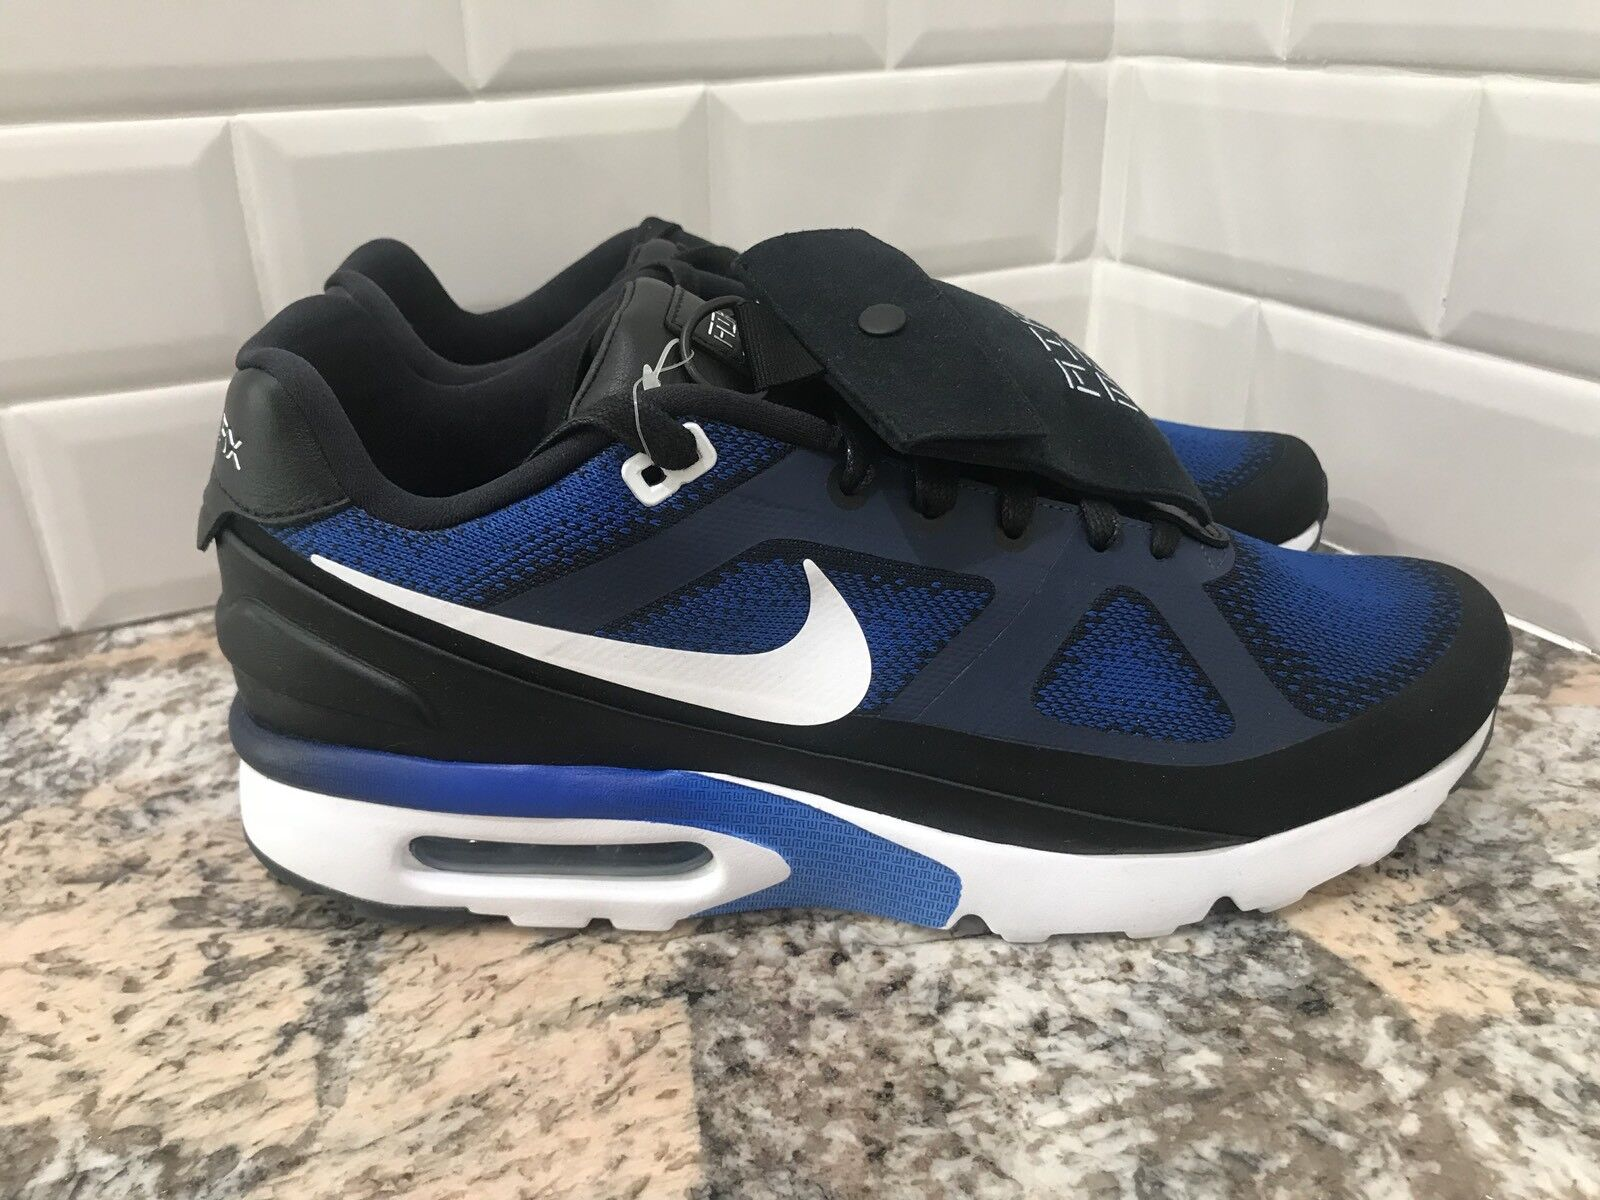 Nike air max mp ultra / mark parker reale sz blu bianco nero 848625-401 sz reale 11,5 ade753